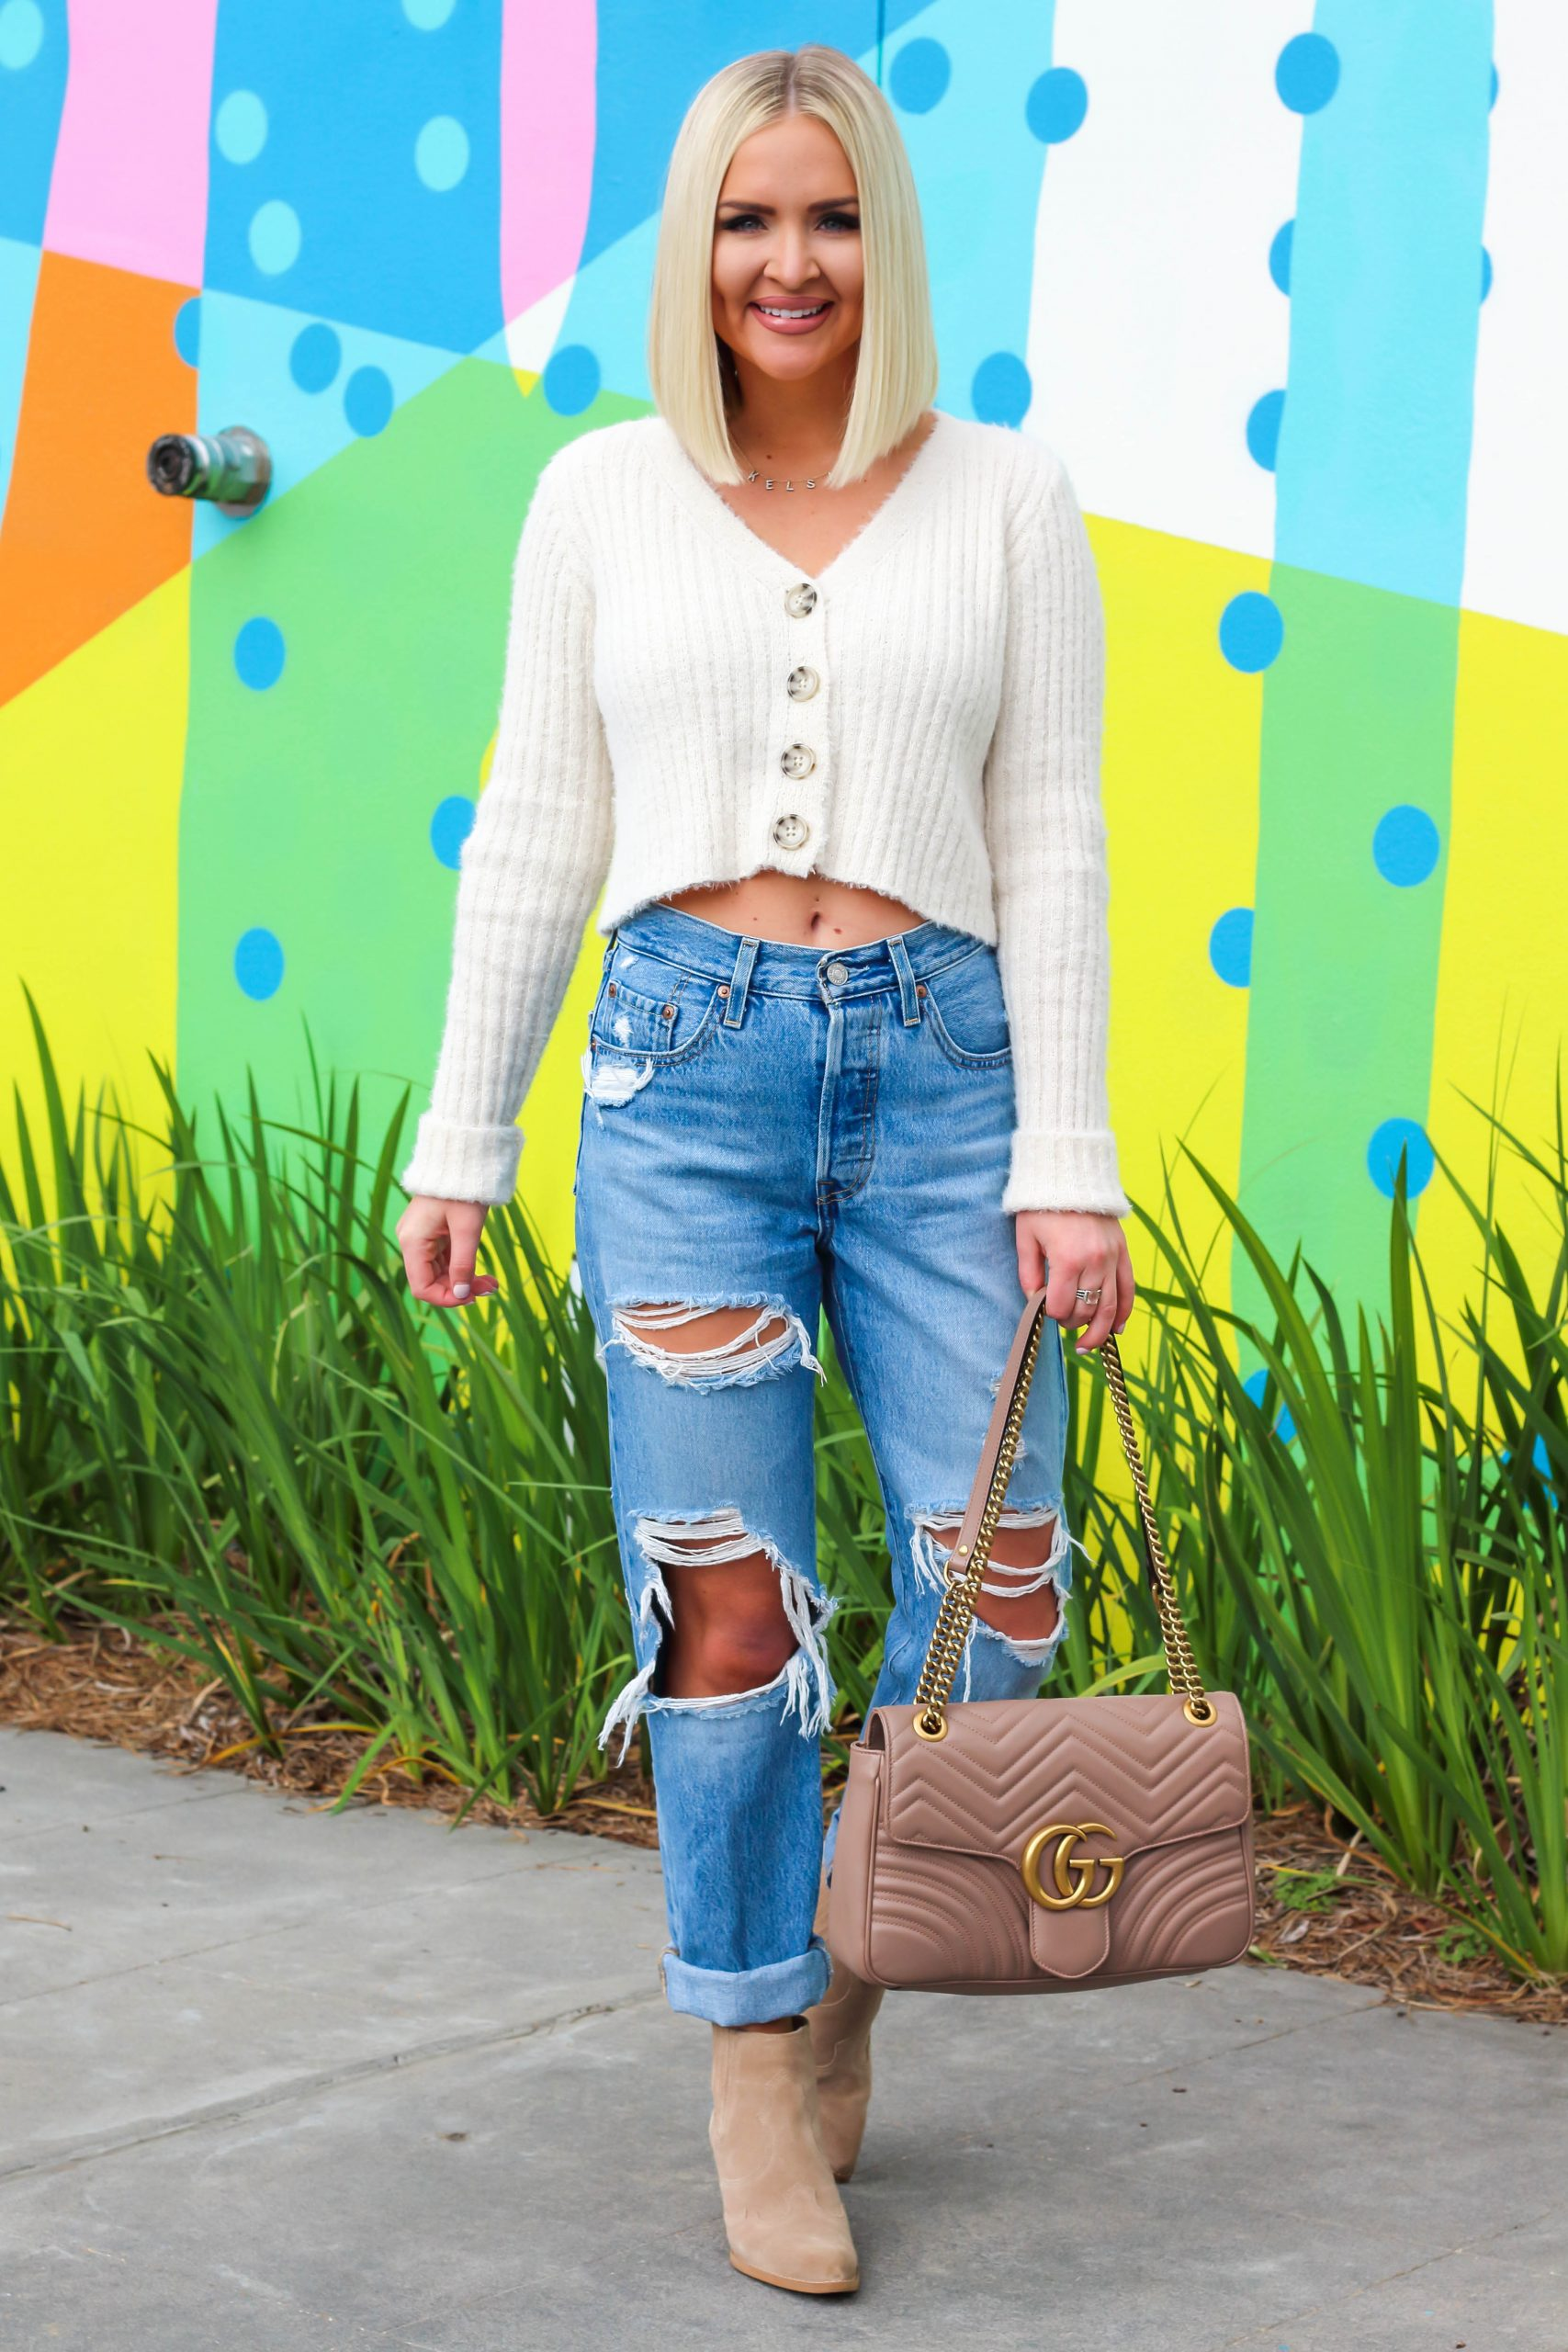 CARDIGAN TOP STYLE